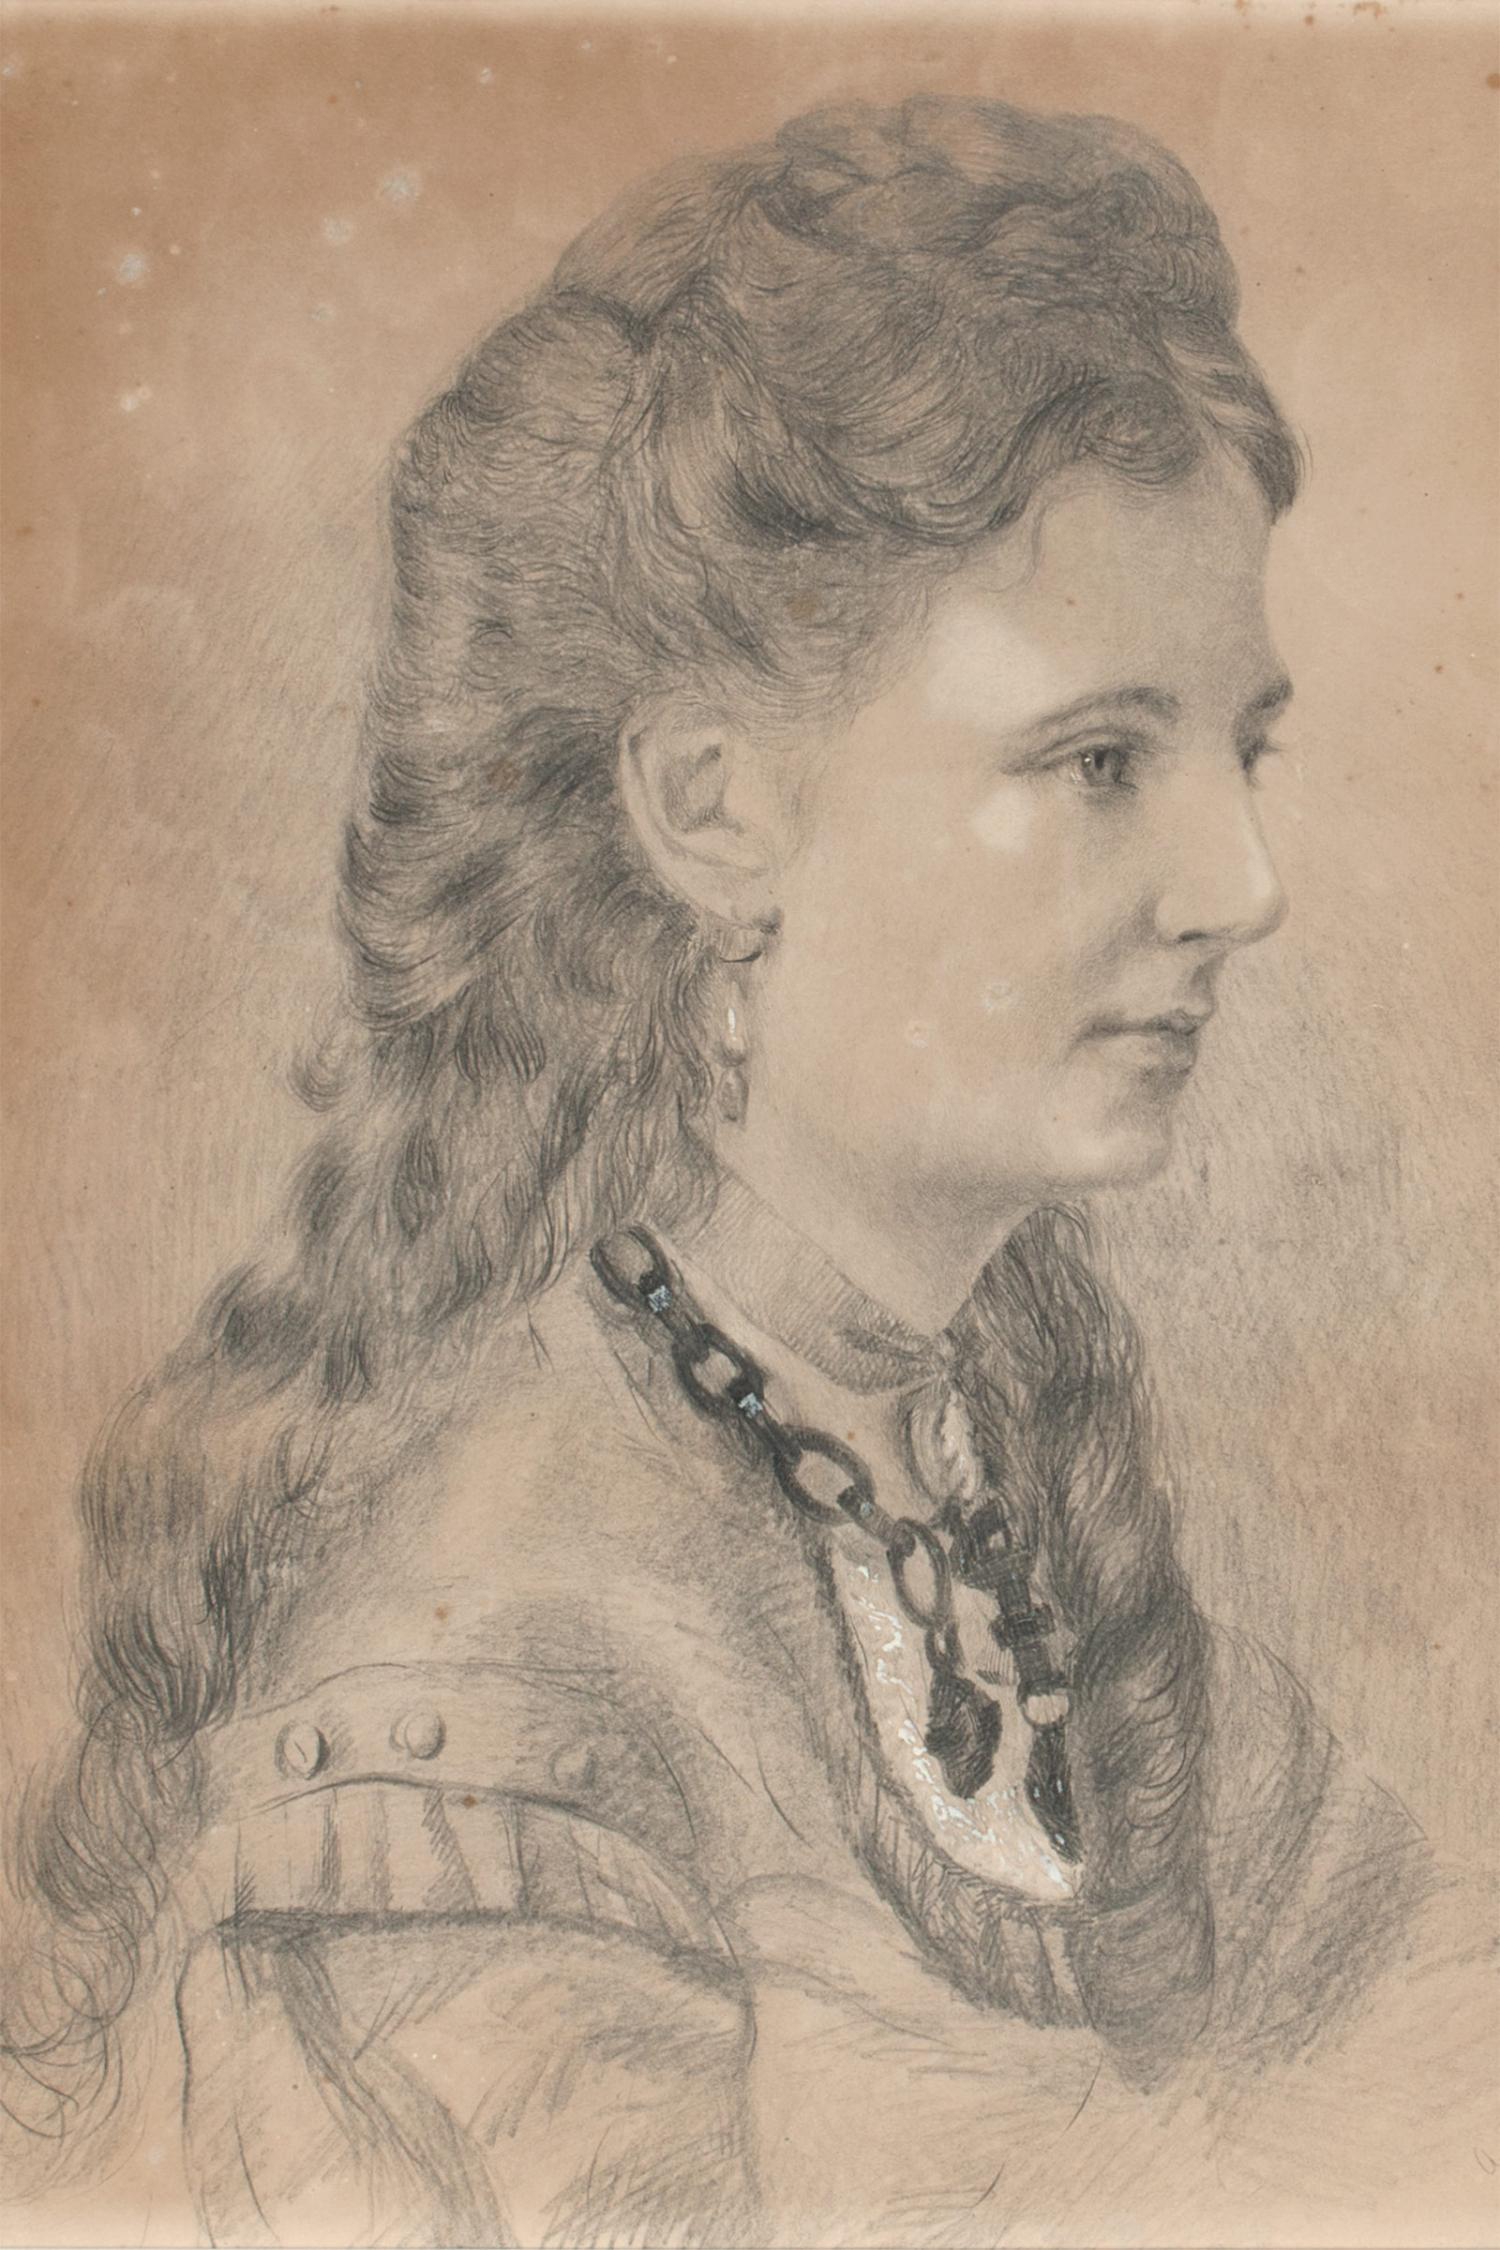 HR84/8-1:2. 1872. A large framed (-2) pencil portrait (-1) of Bessie Buchanan wearing a heavy ornate necklace (HR93/203).